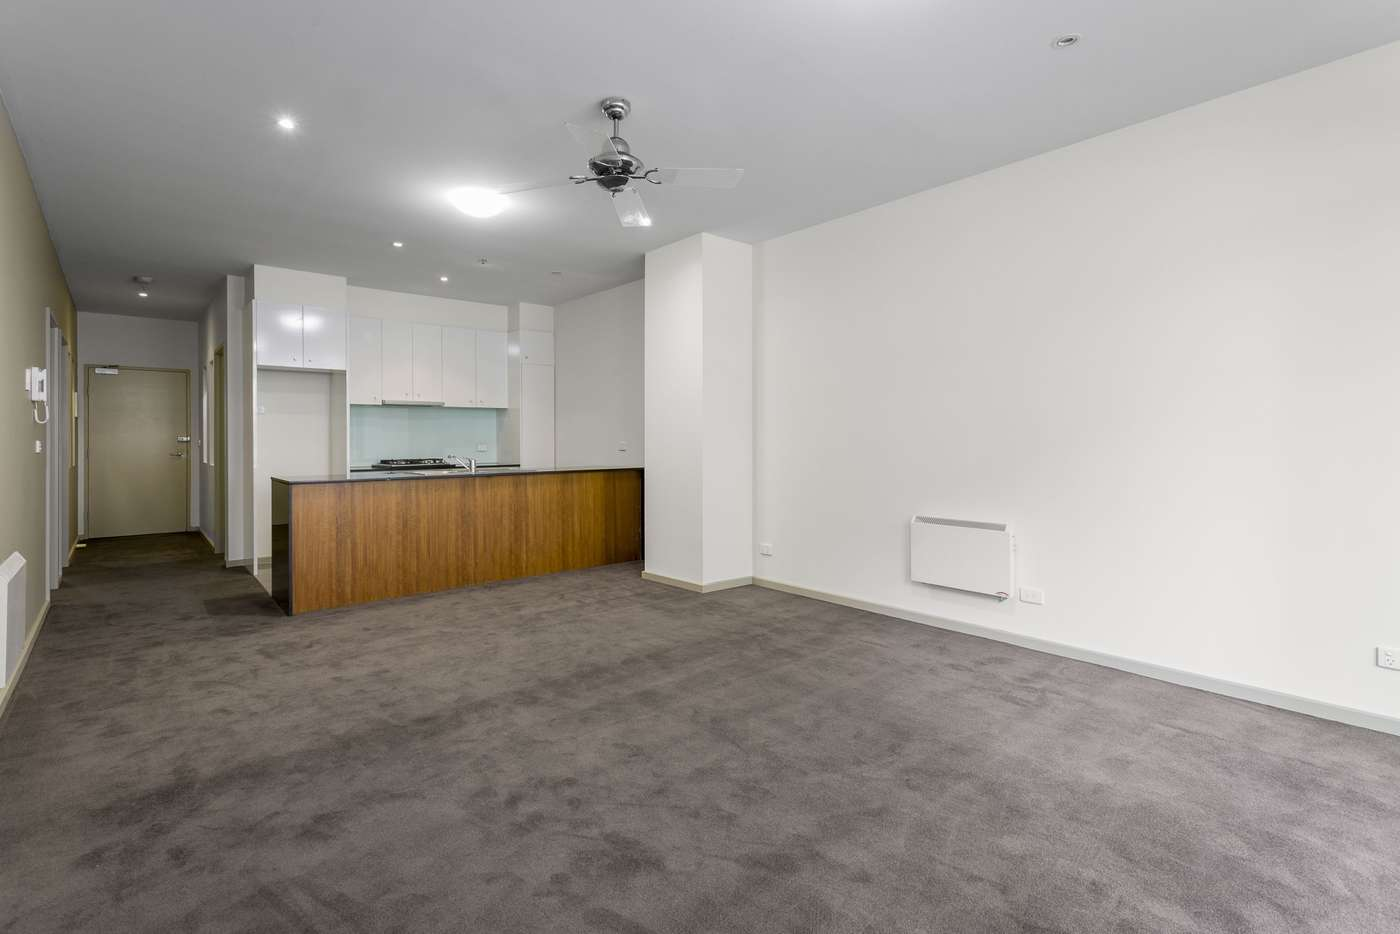 Main view of Homely apartment listing, 204/270 King Street, Melbourne VIC 3000